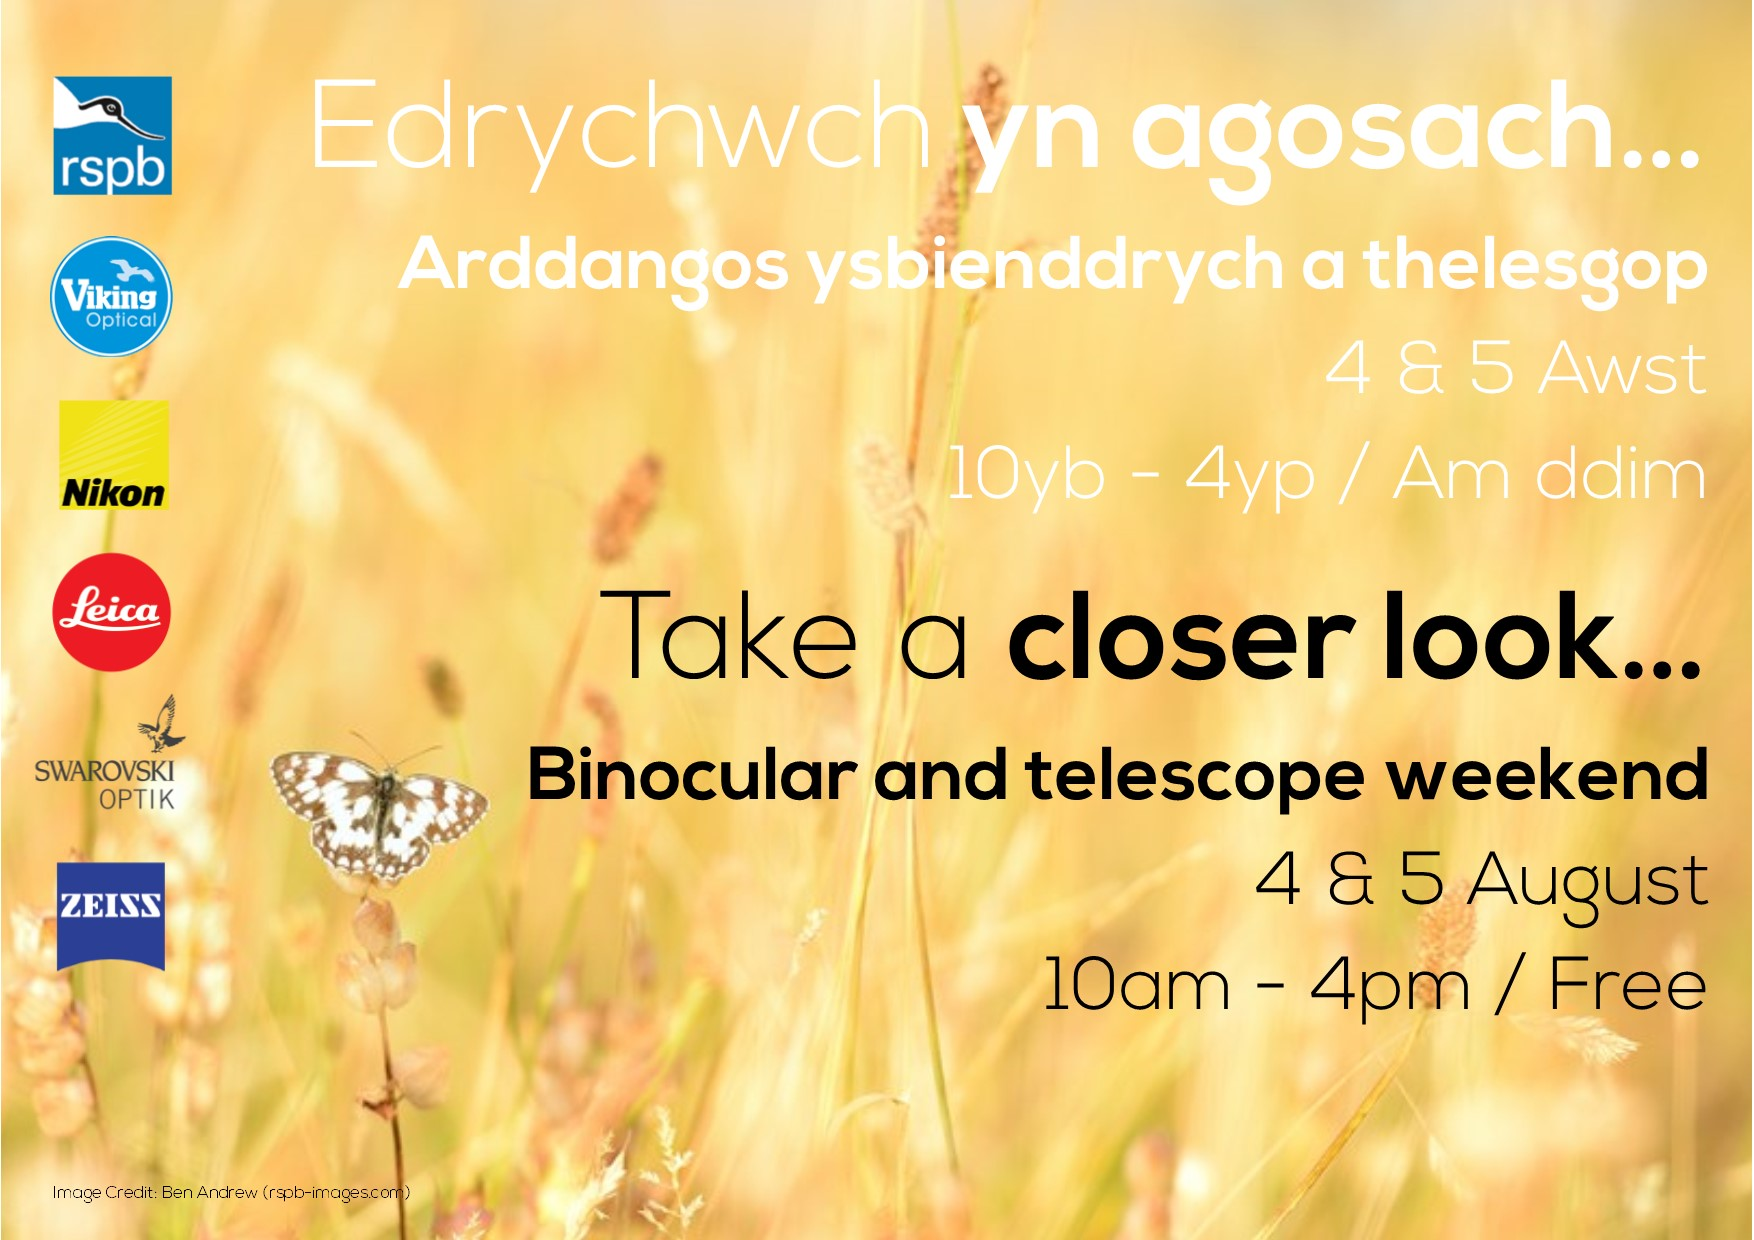 Take a closer look... Binocular and telescope weekend